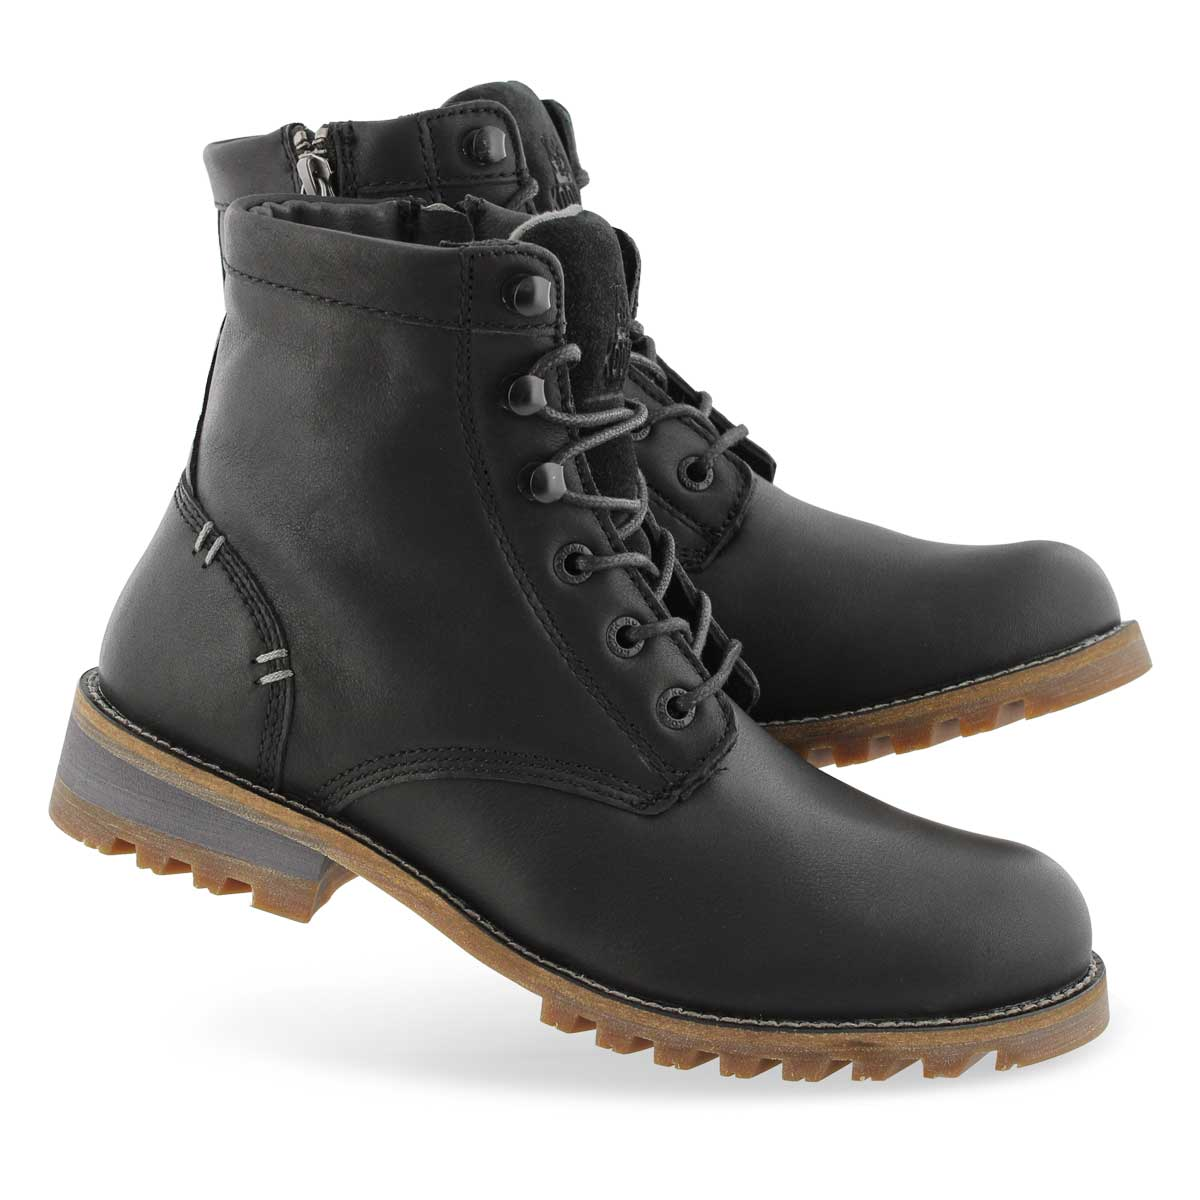 Lds Mahone black wtpf laceup ankle boot